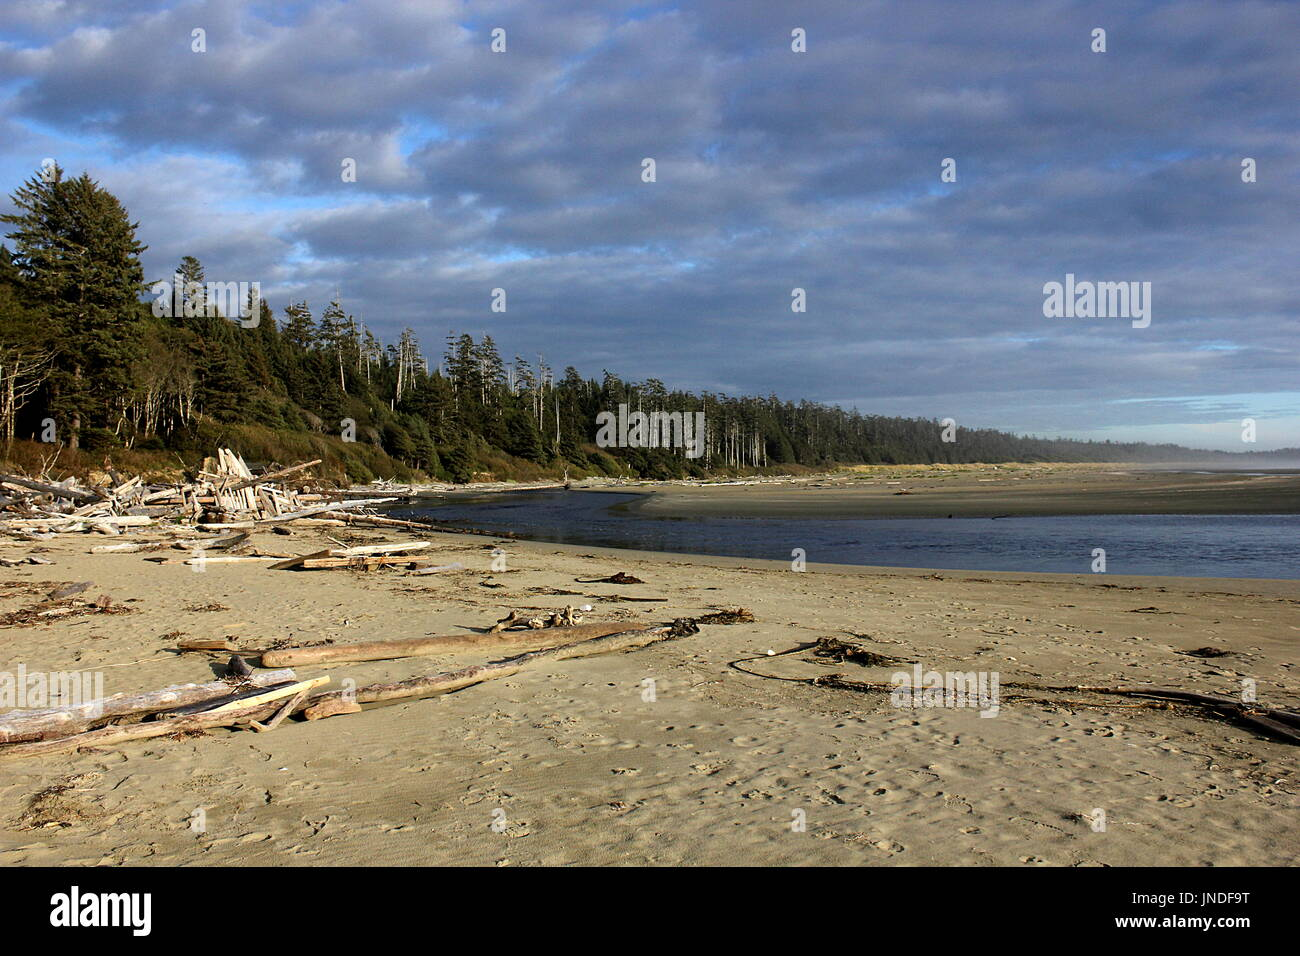 Desolate Long Beach near Tofino in the Pacific Rim National Park Reserve on Vancouver Island, British Columbia - Stock Image